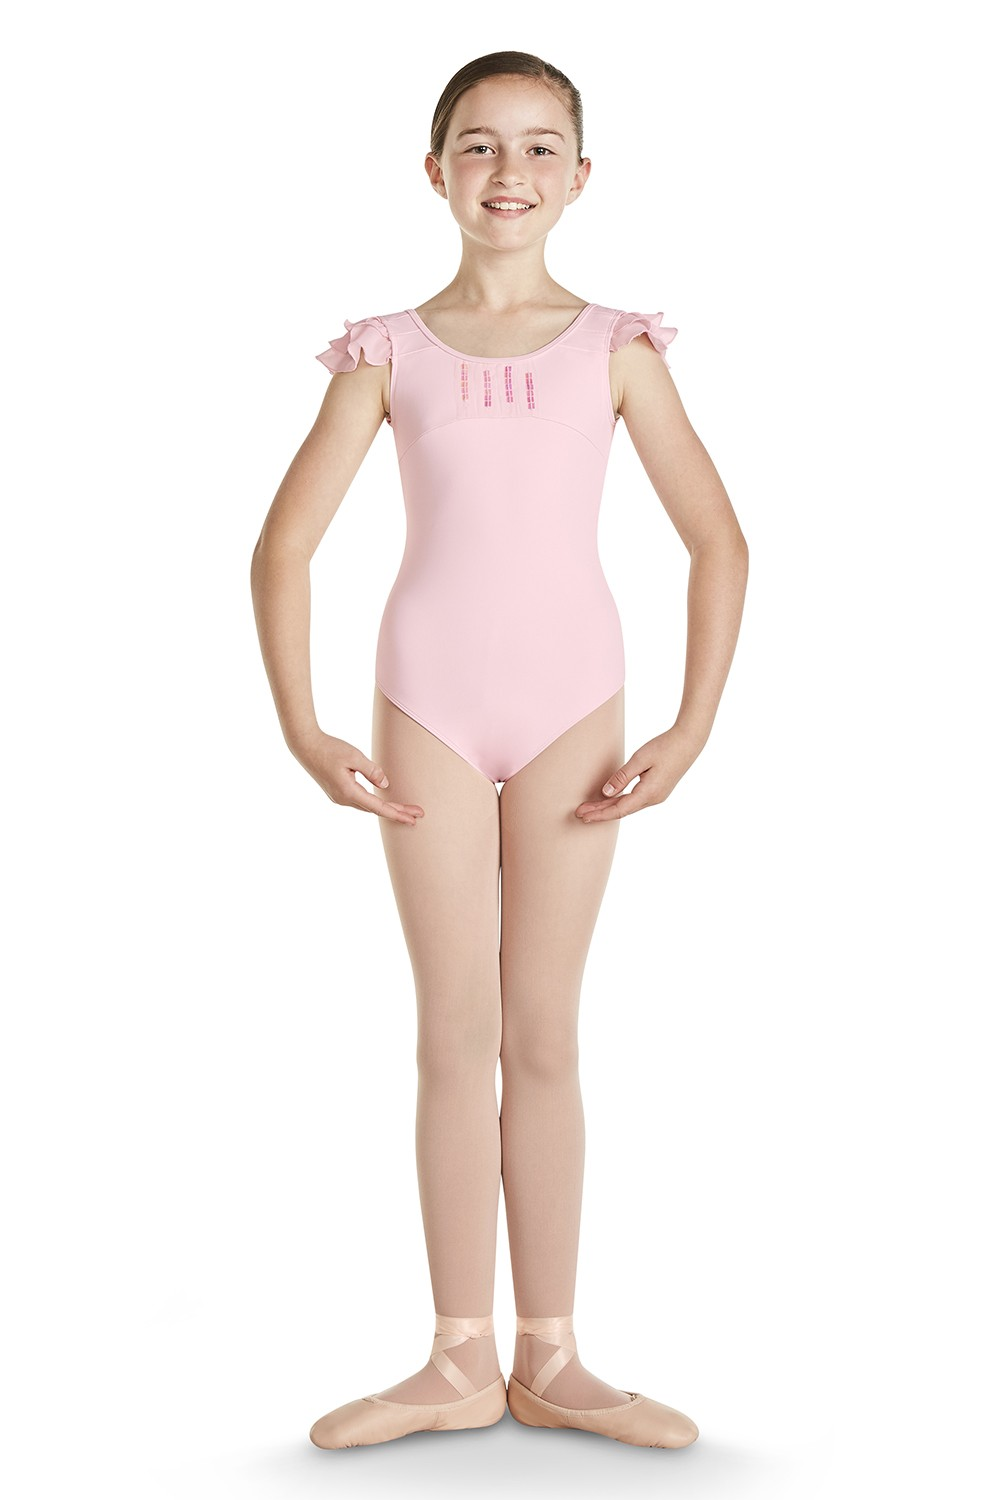 Areta Girls Short Sleeve Leotards